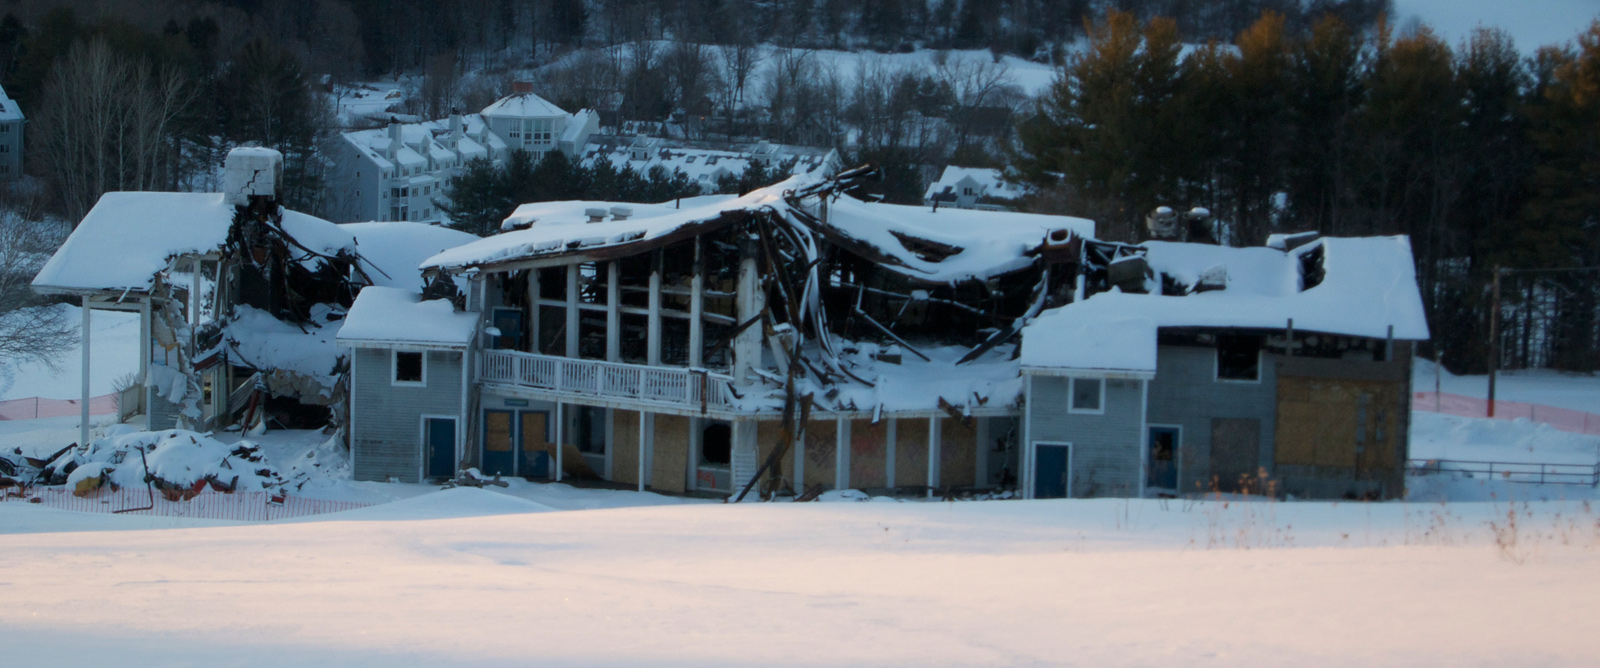 The destroyed base lodge following the January 8 fire. According to West Windsor Fire Chief Mike Spackman, the temperature that morning was about 10 below zero when firefighters arrived before dawn. The base lodge is not included in the land sale.